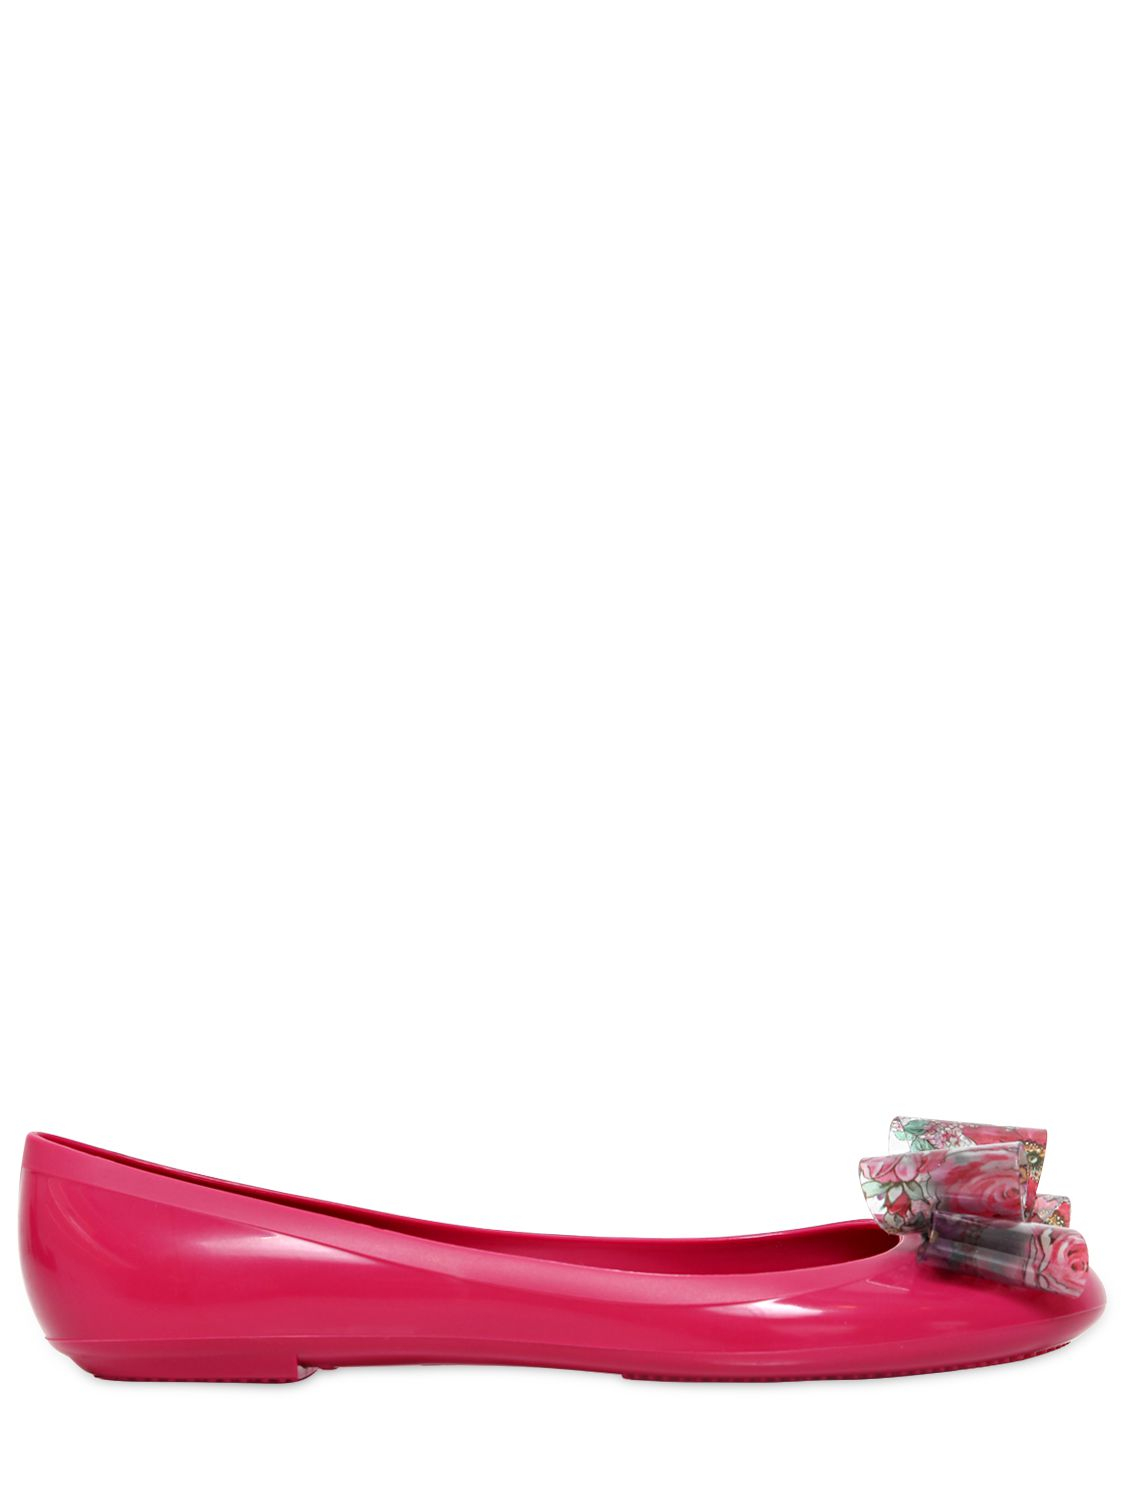 857599d27 Lyst - RED Valentino Rubber Ballerina Flats with Floral Bow in Pink